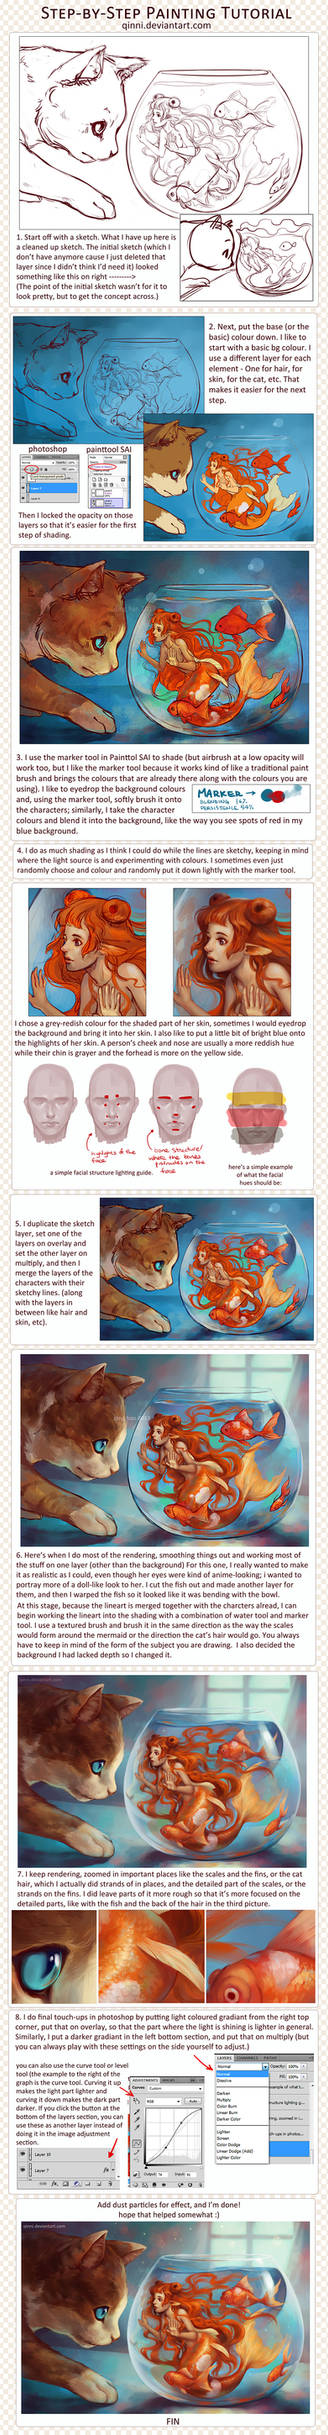 Step-by-Step Digital Painting Tutorial